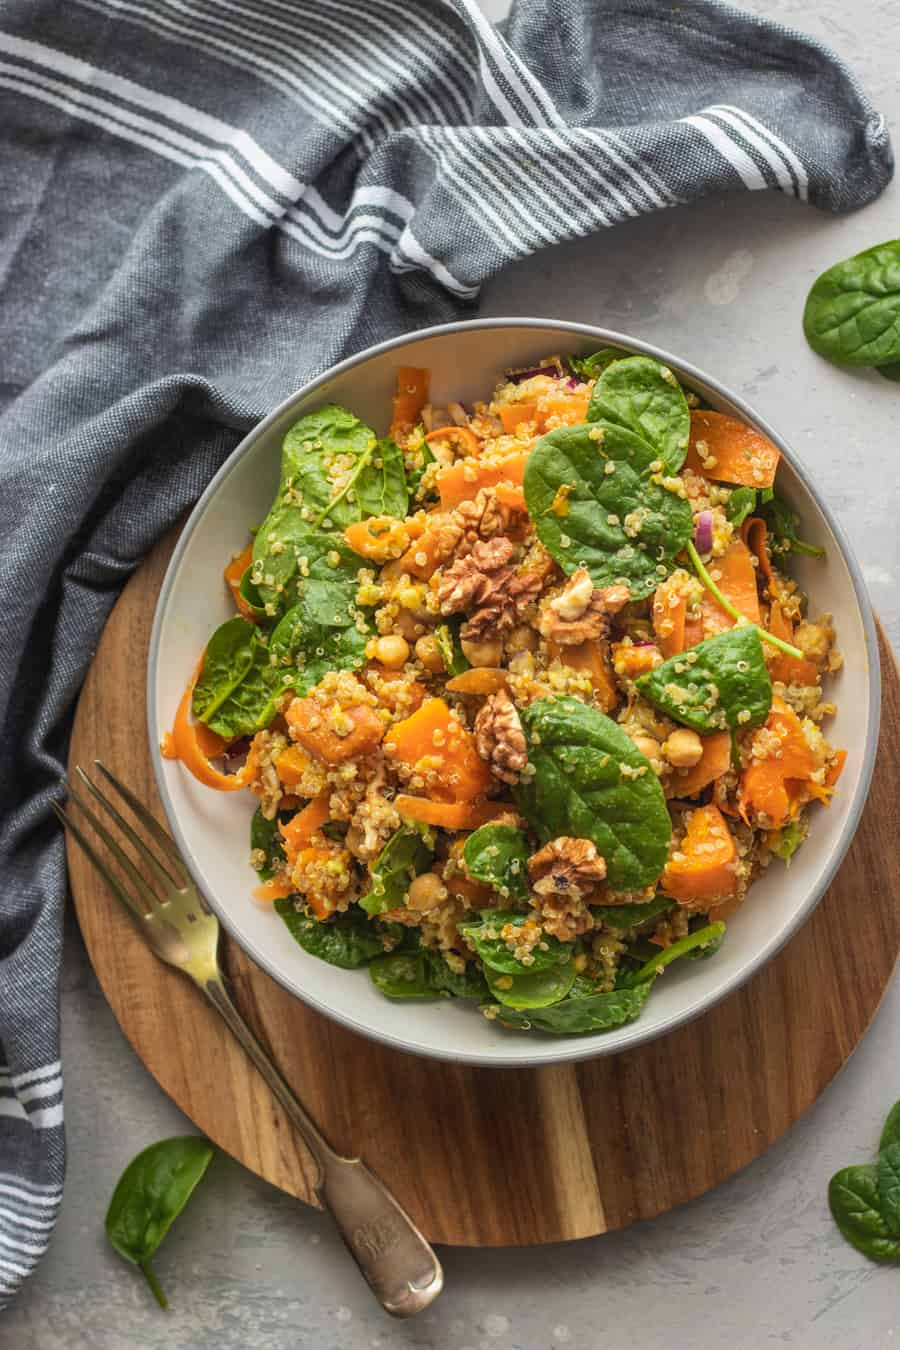 Vegan chickpea quinoa salad with pumpkin and spinach